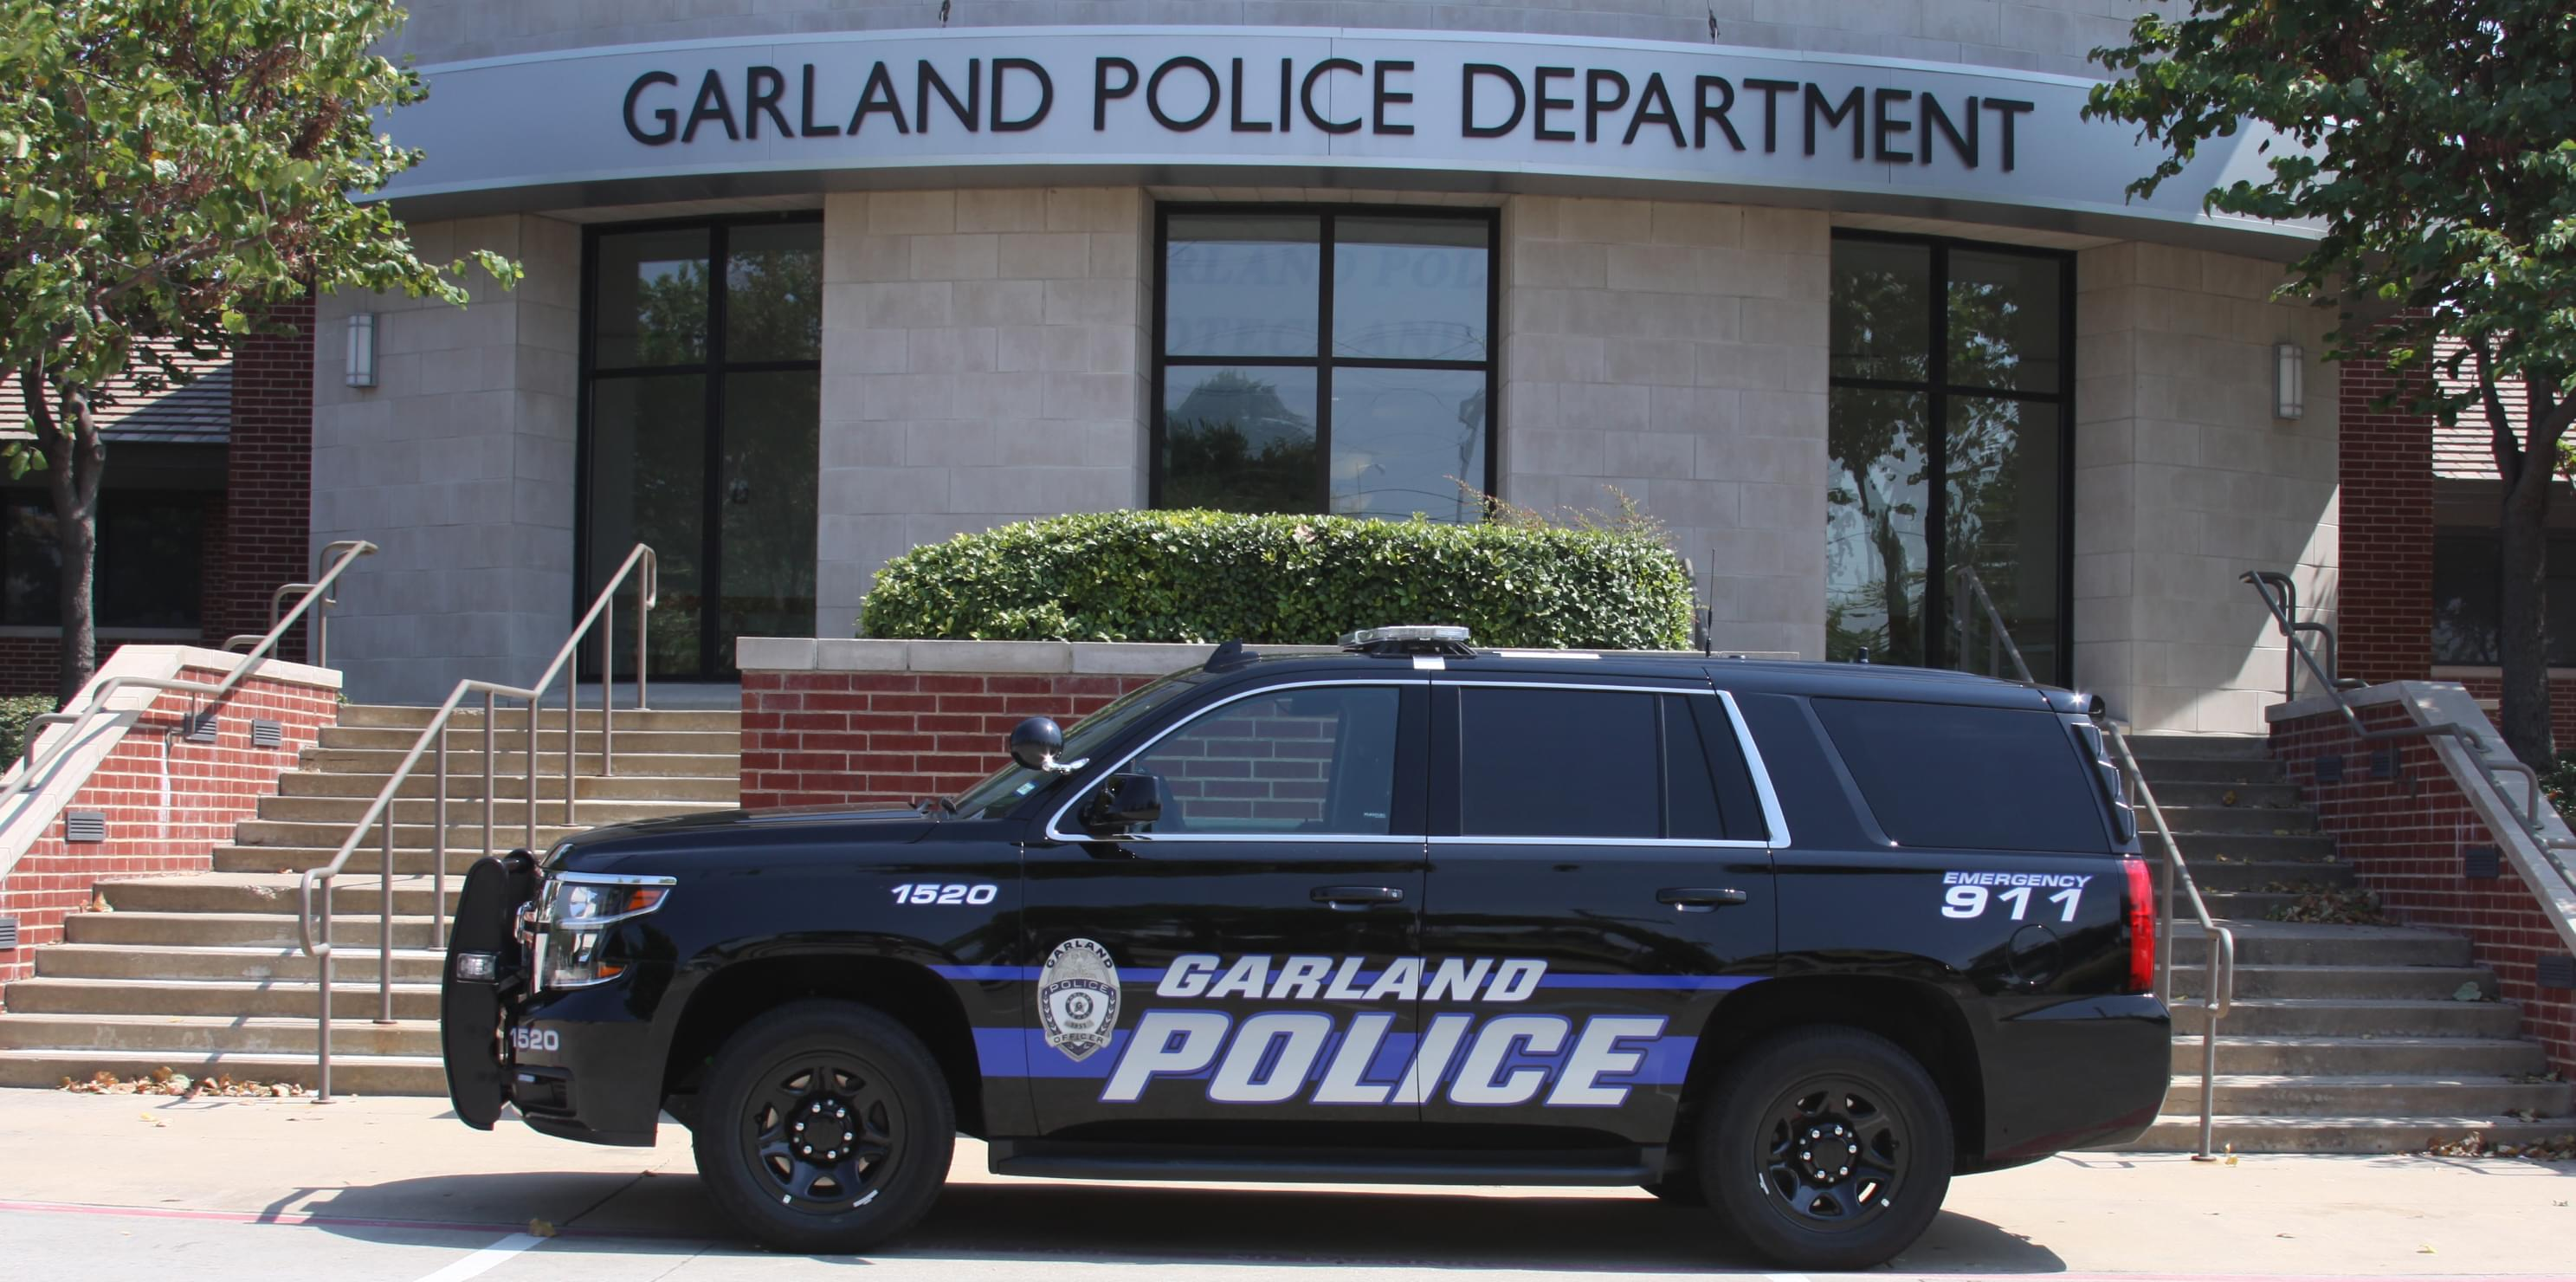 East Garland Residents Asked to Stay Indoors For Hours While Police Investigate Shooting